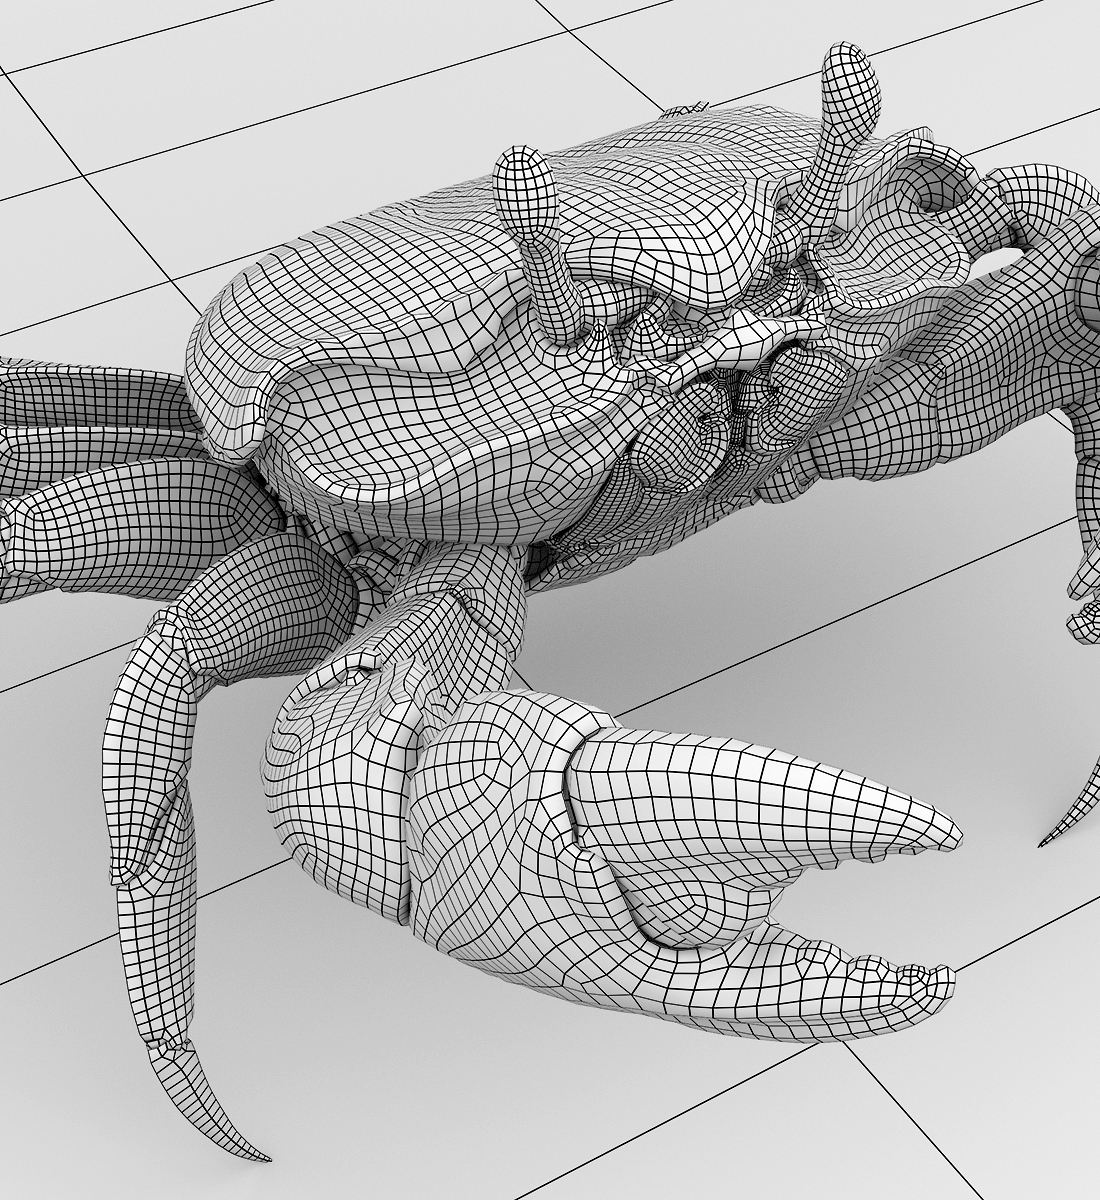 Crab_Shot_04_WireFrame.jpg